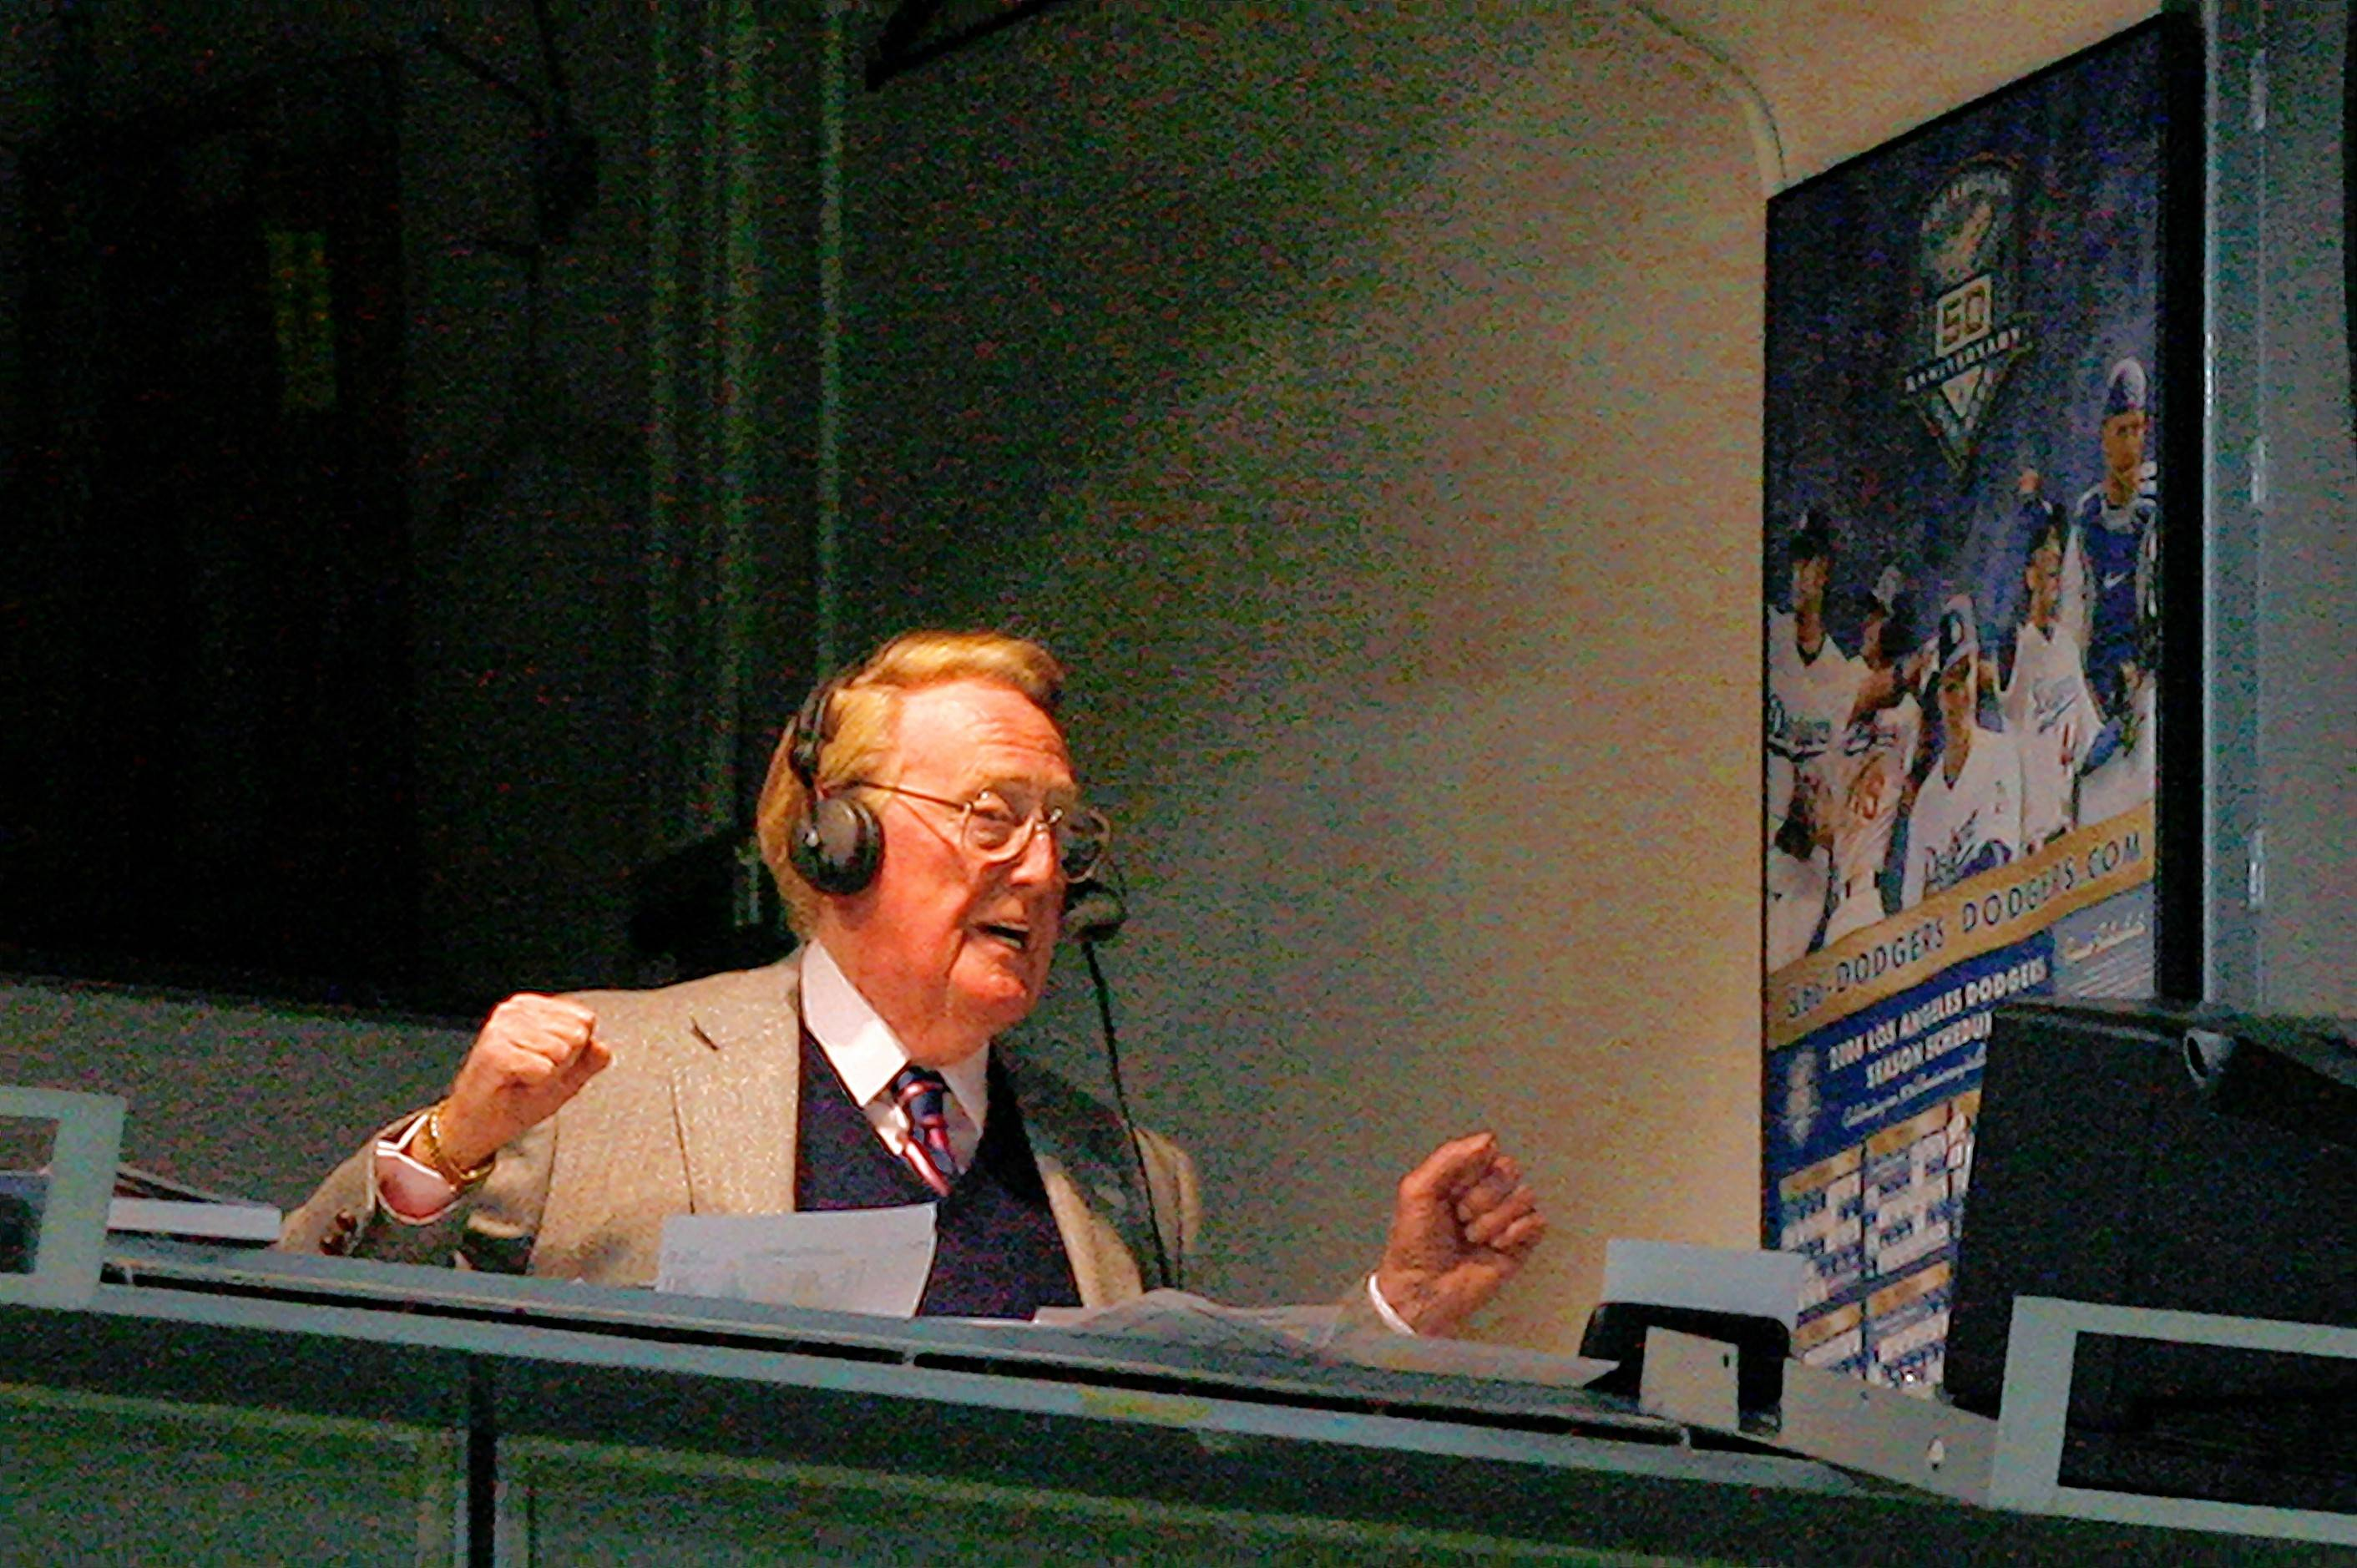 Sportscaster Vin Scully broadcasts from the booth at Dodger Stadium in Los Angeles. He's retiring at the end of this season after 67 years.